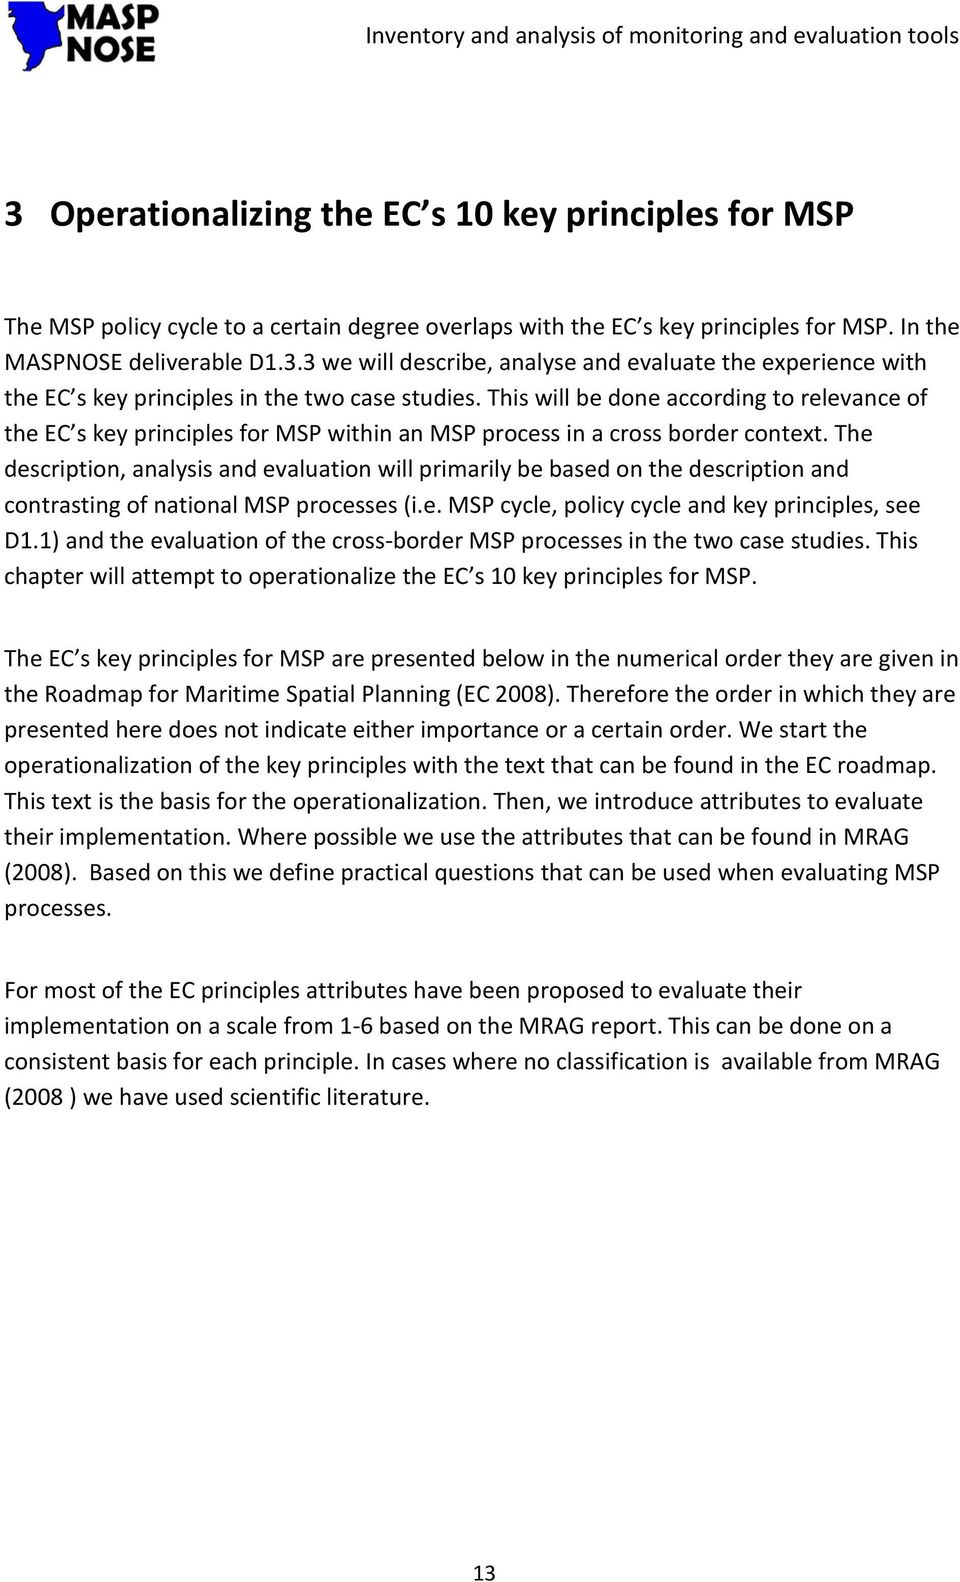 The description, analysis and evaluation will primarily be based on the description and contrasting of national MSP processes (i.e. MSP cycle, policy cycle and key principles, see D1.